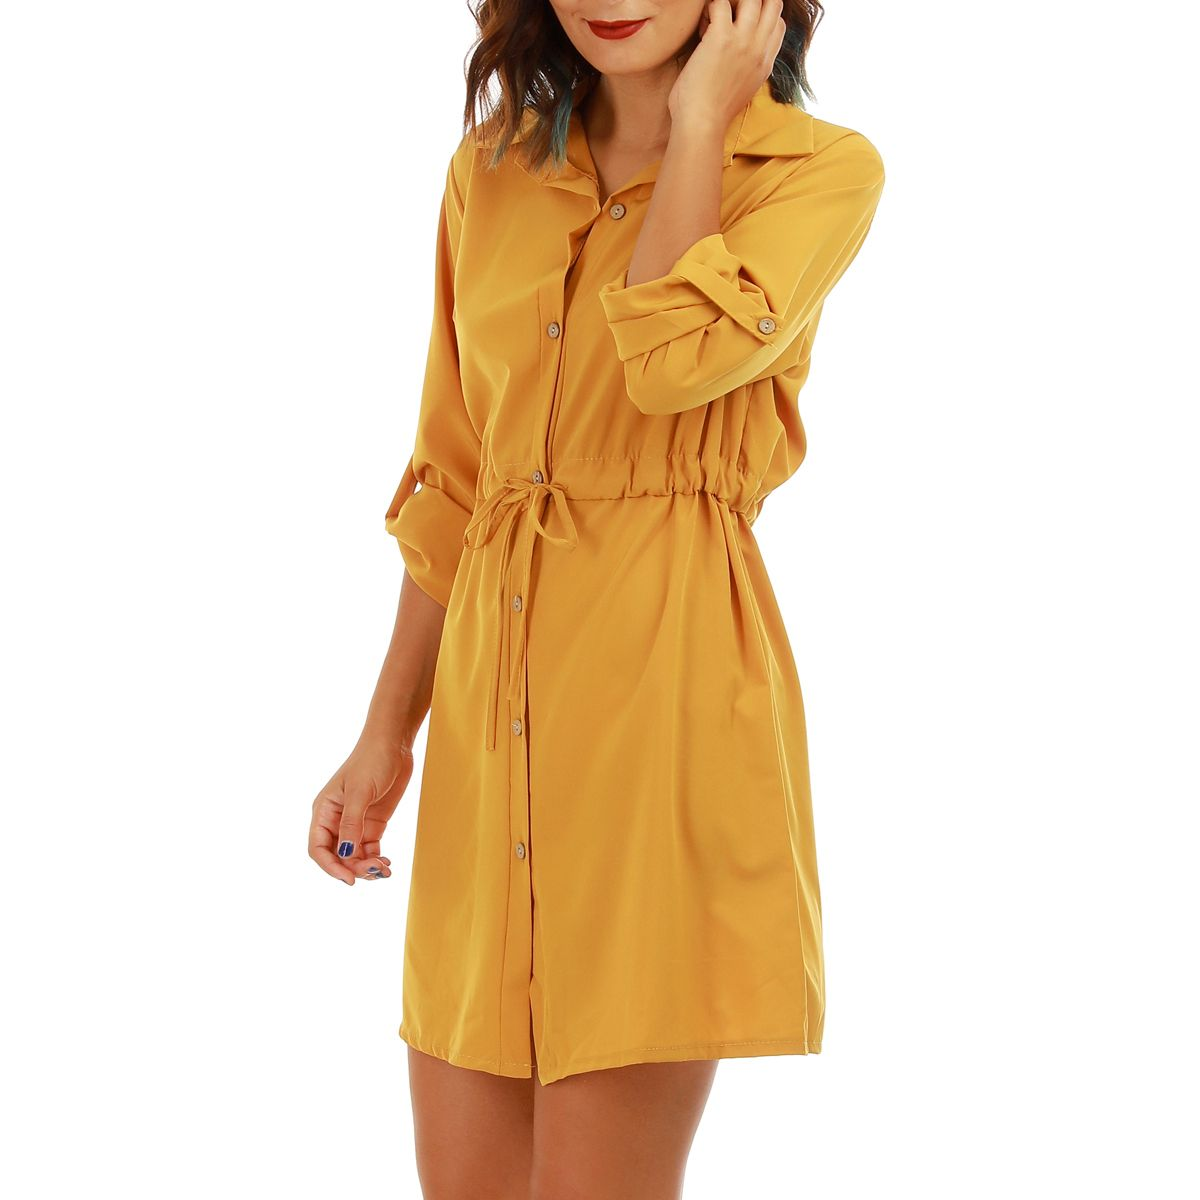 f8255828243 Robe chemise jaune moutarde cintrée. S06-8822-YLL. Loading zoom